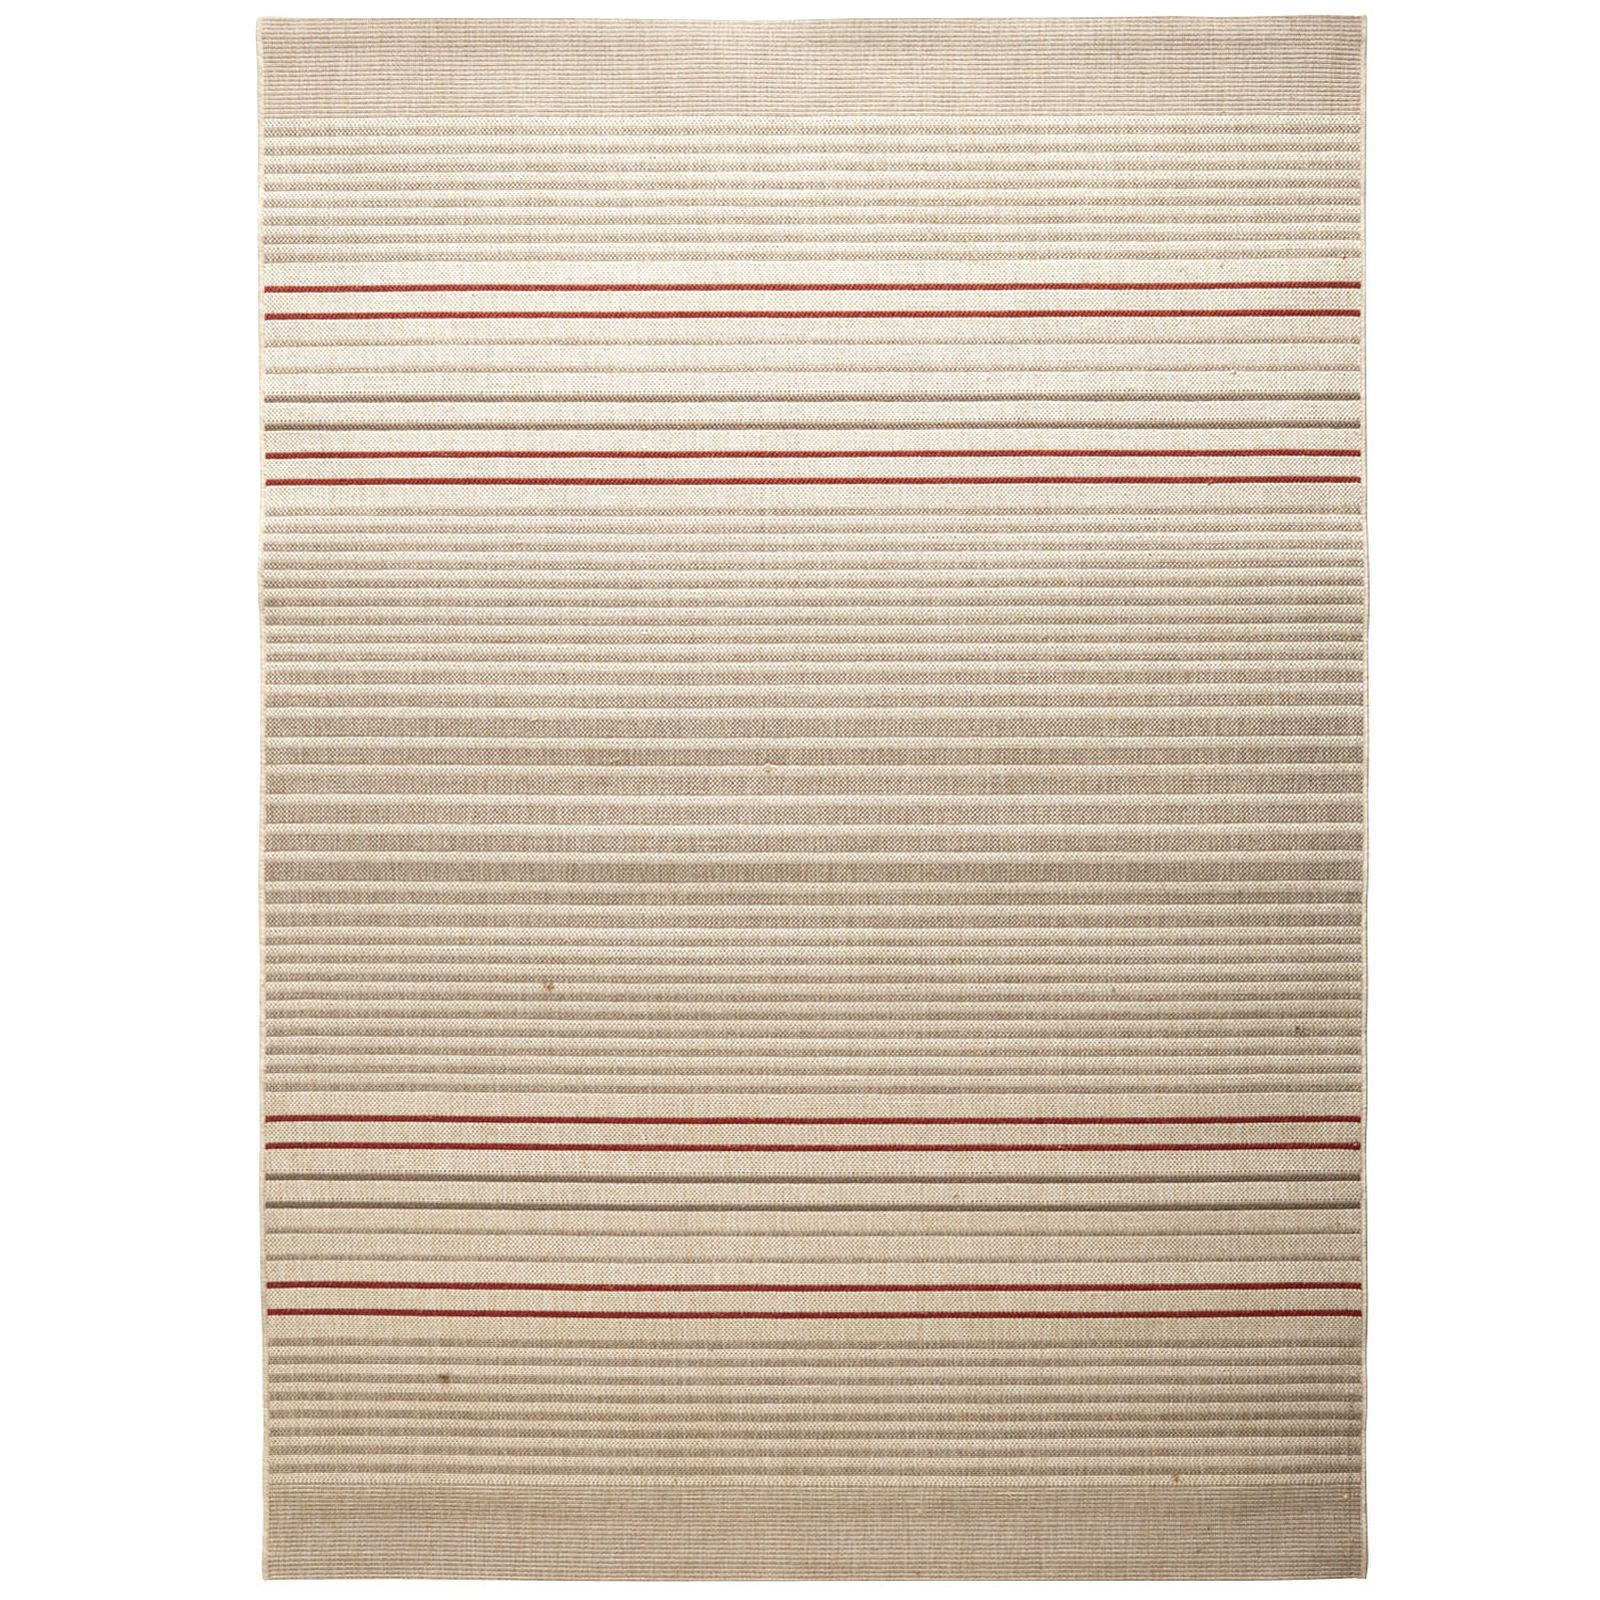 Experience comfort al fresco. Woven to resist the elements, including UV rays, this multi-stripe rug lends spicy colors and a energetic vibe whether inside or outside. Also appealing? It's low-maintenance. Just rinse with a garden hose to clean. Now that's an al fresco idea you'll only find at Pier 1.